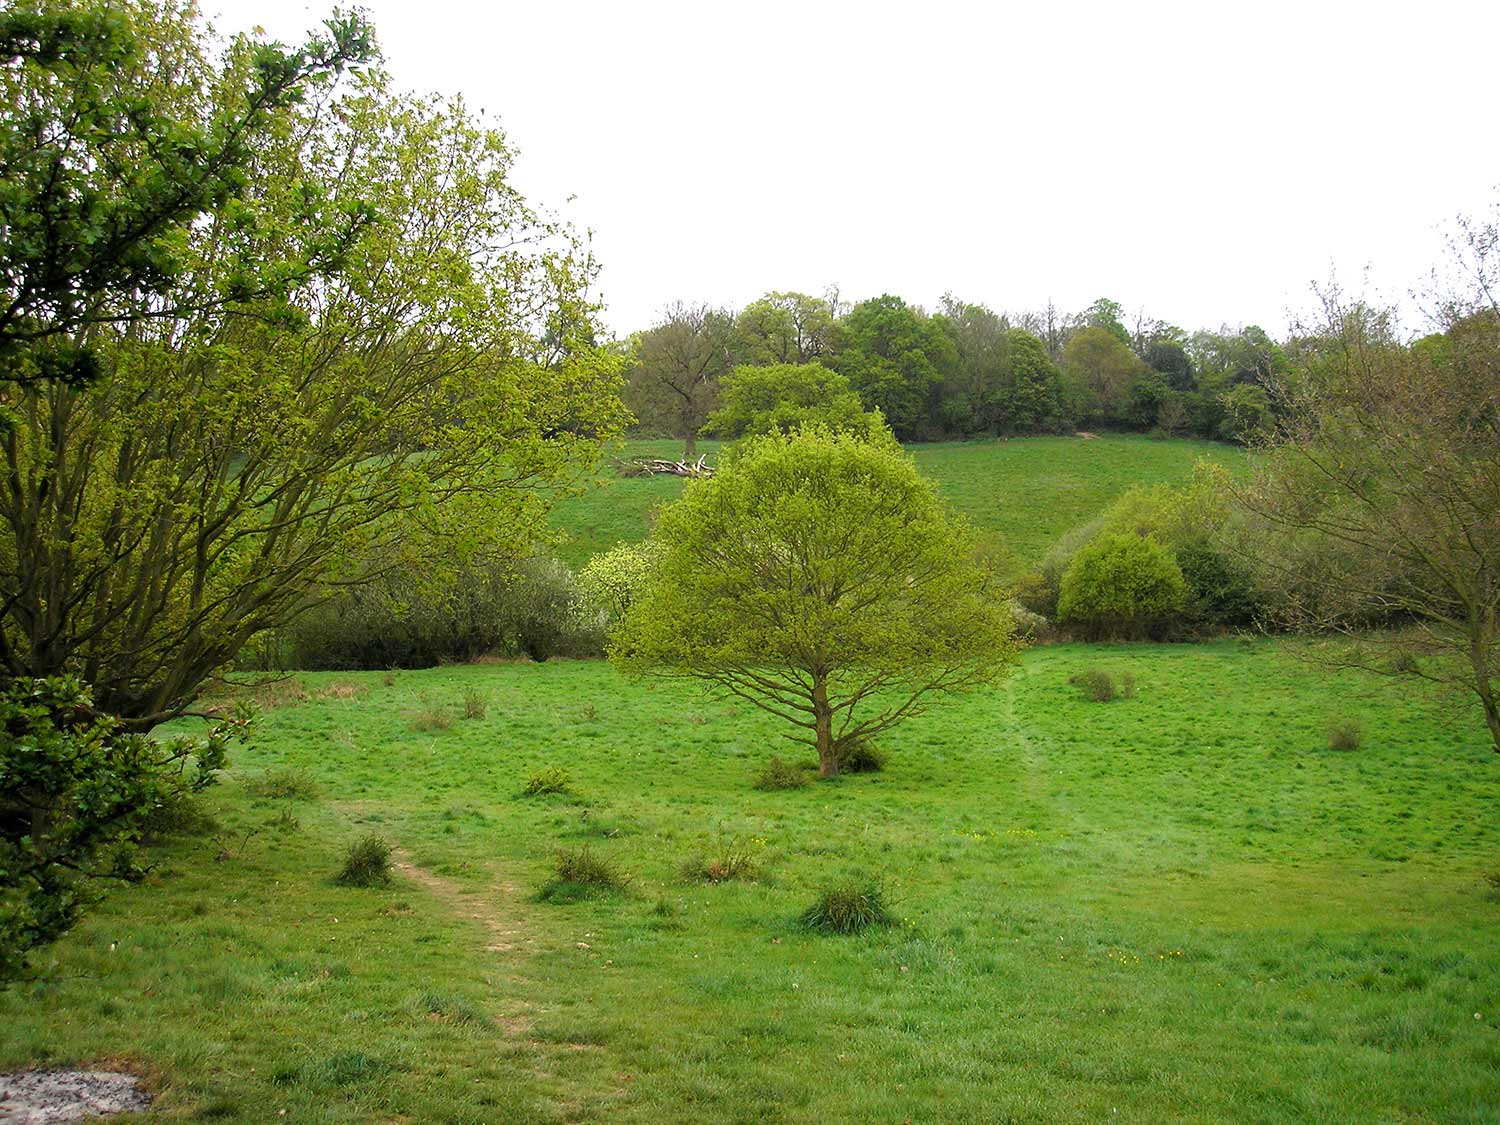 View from Hilly Field to Cumborrow